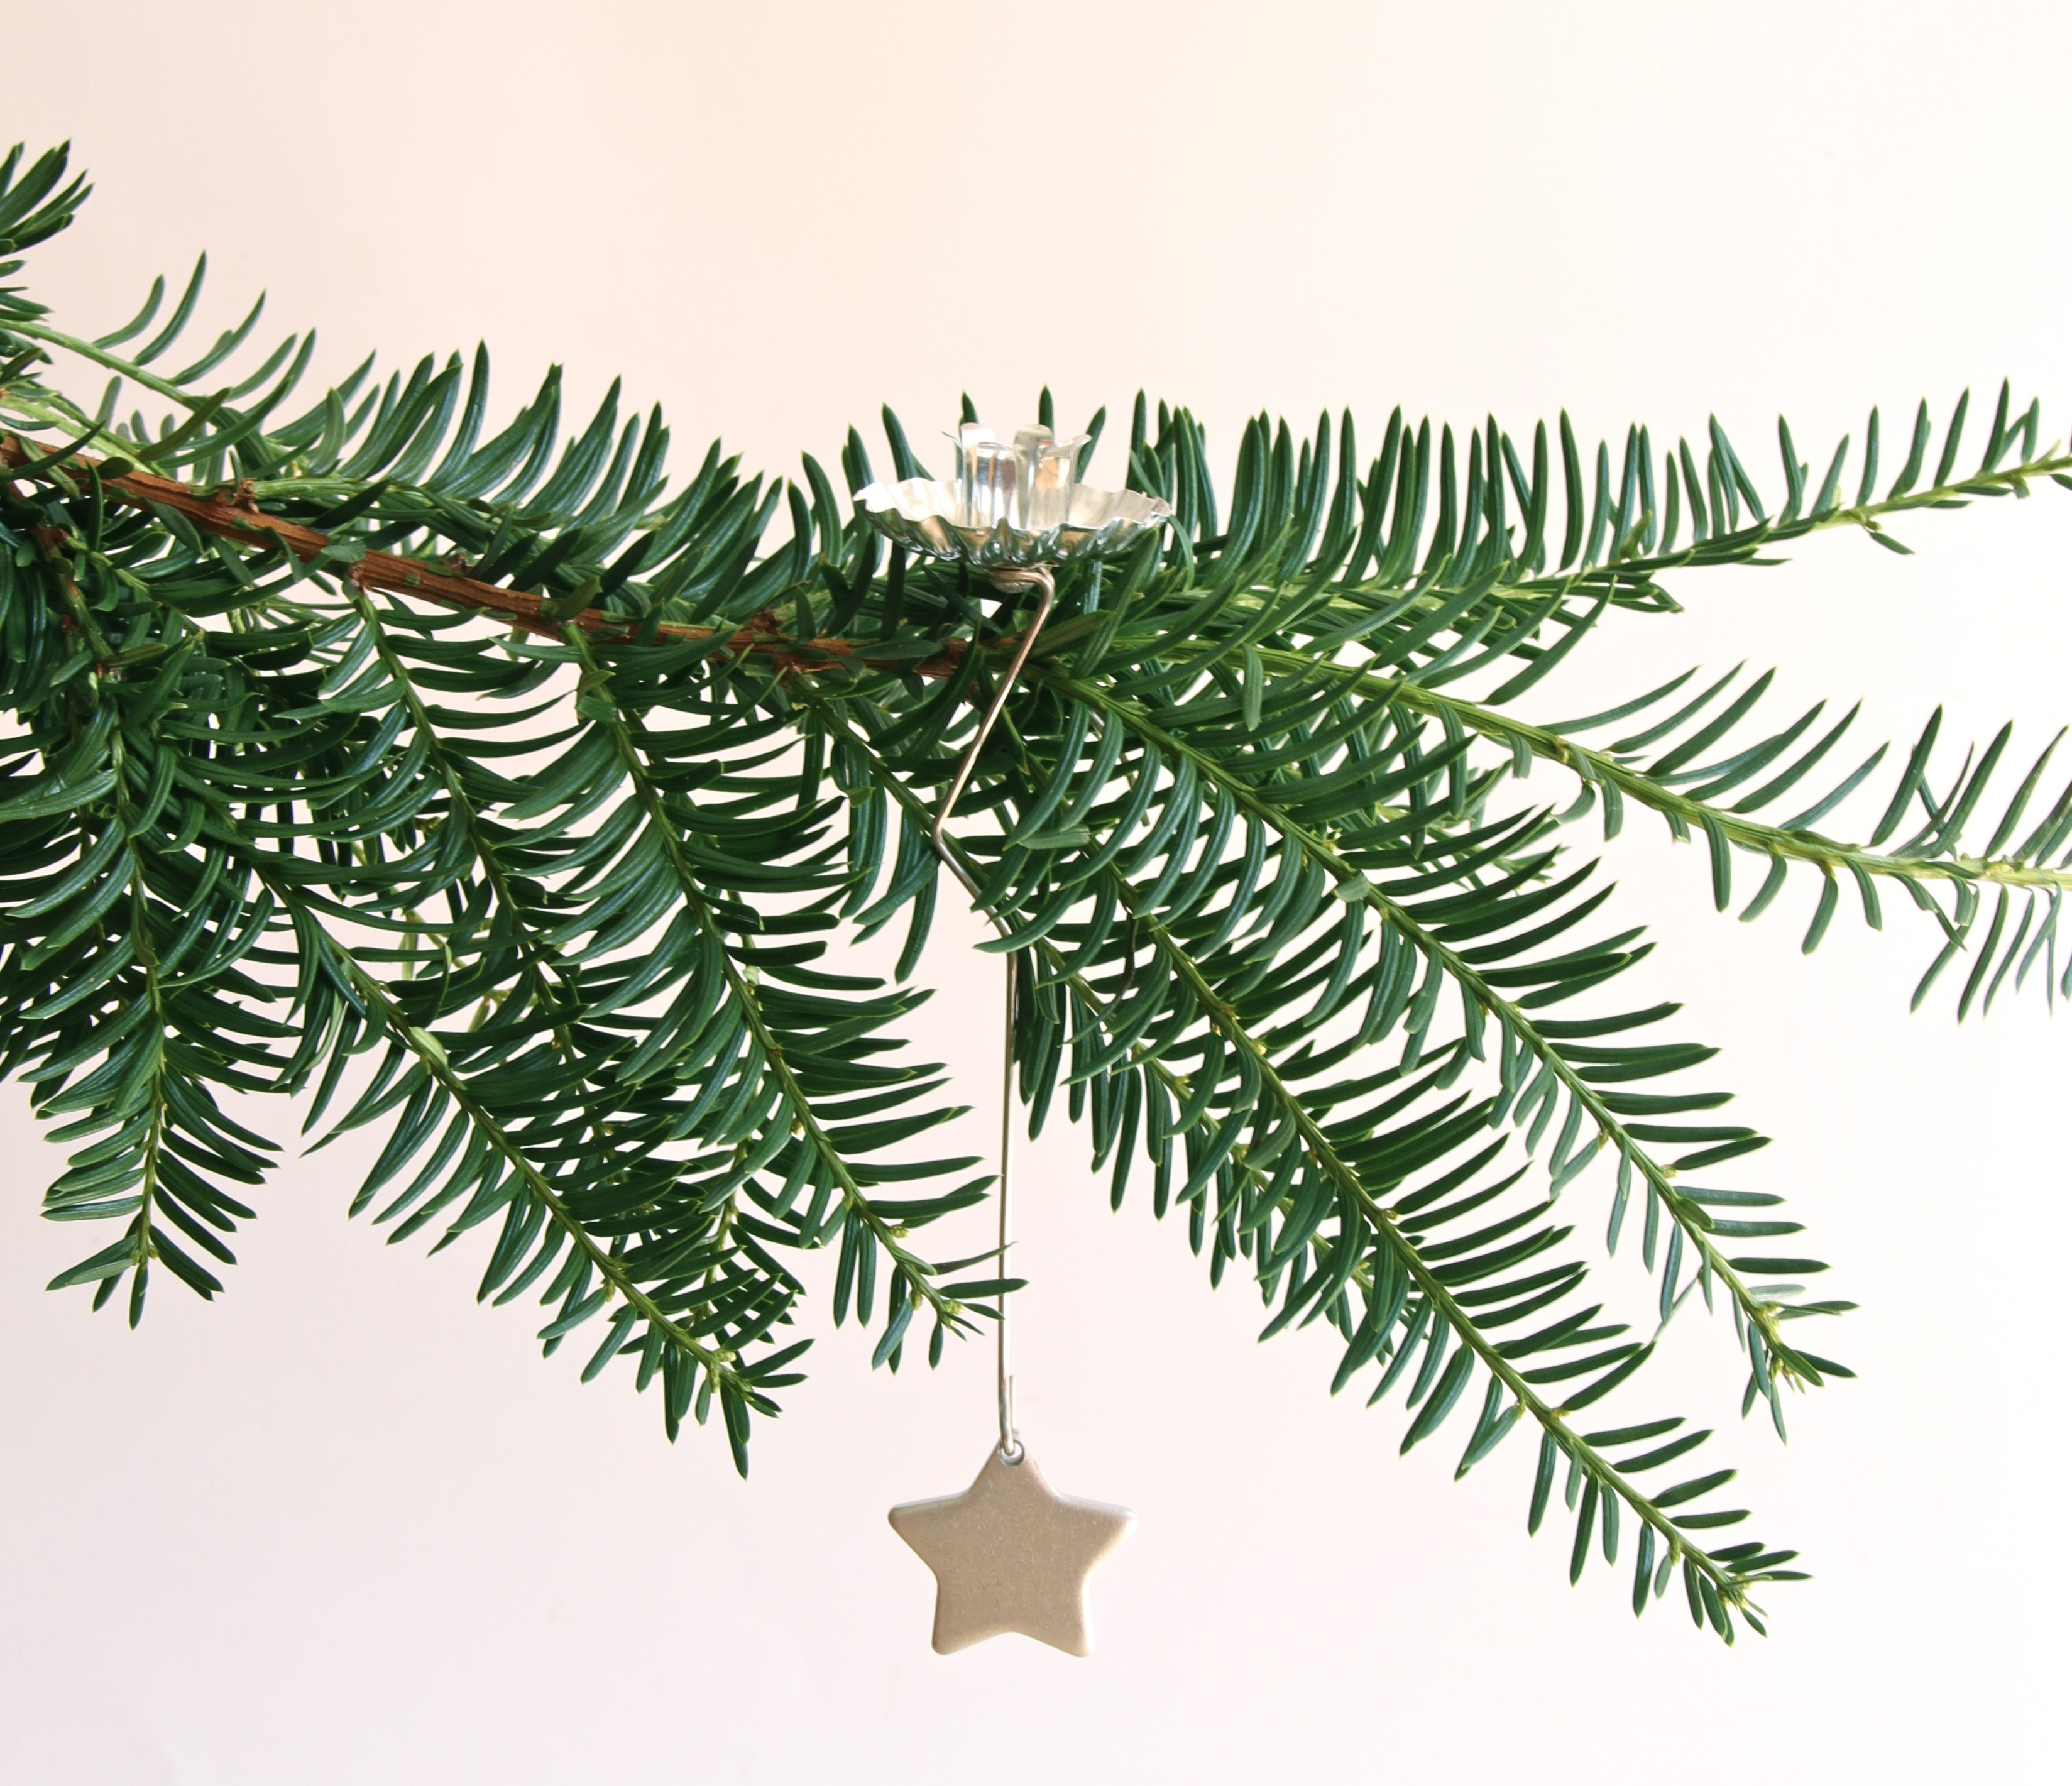 Free photo: Christmas tree branch - Branches, Christmas, Christmastree - Free Download - Jooinn